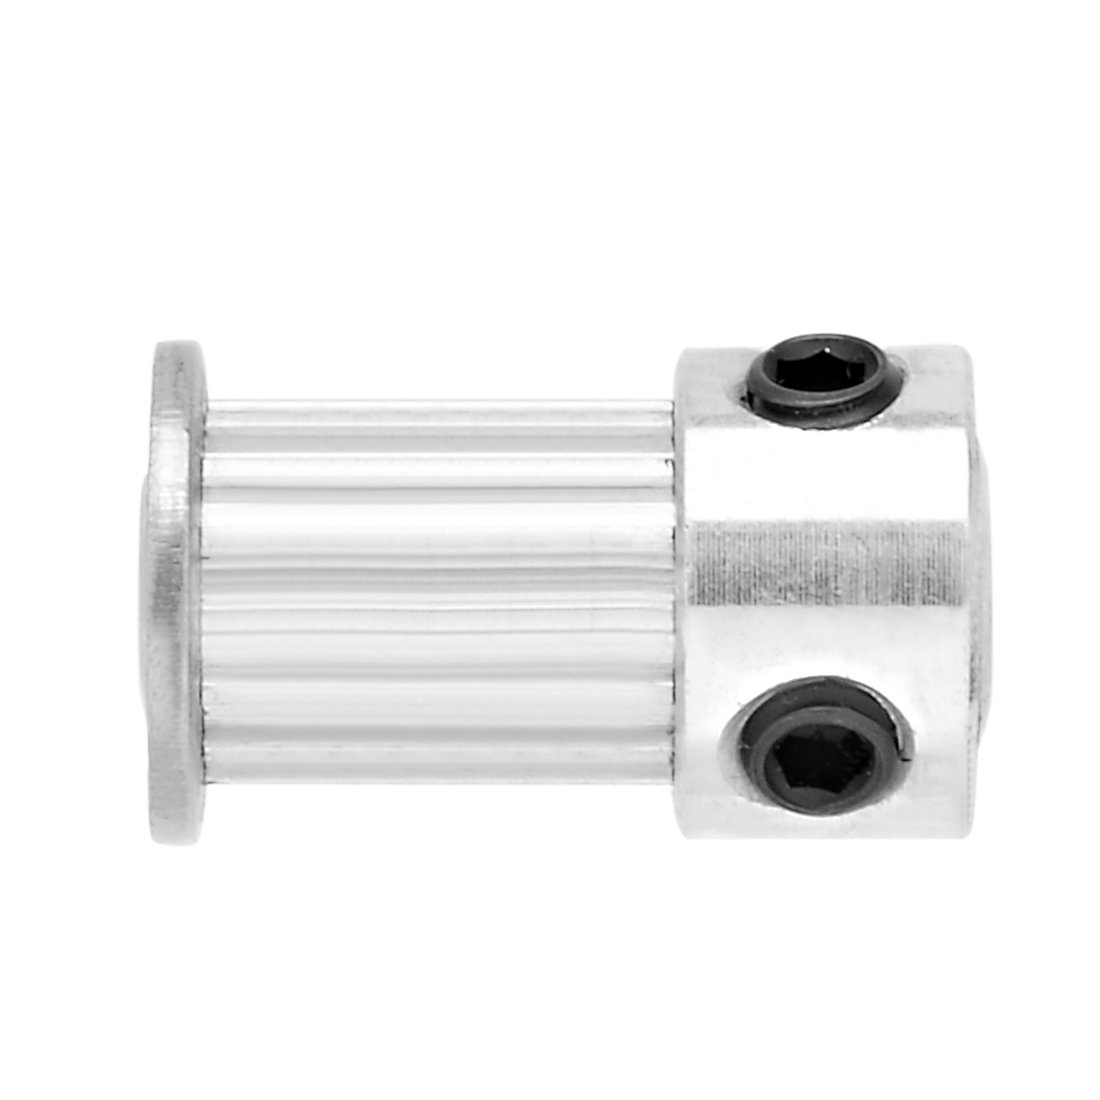 uxcell Aluminum MXL 16 Teeth 6mm Bore Timing Belt Pulley Synchronous Wheel for 6mm Belt 3D Printer CNC